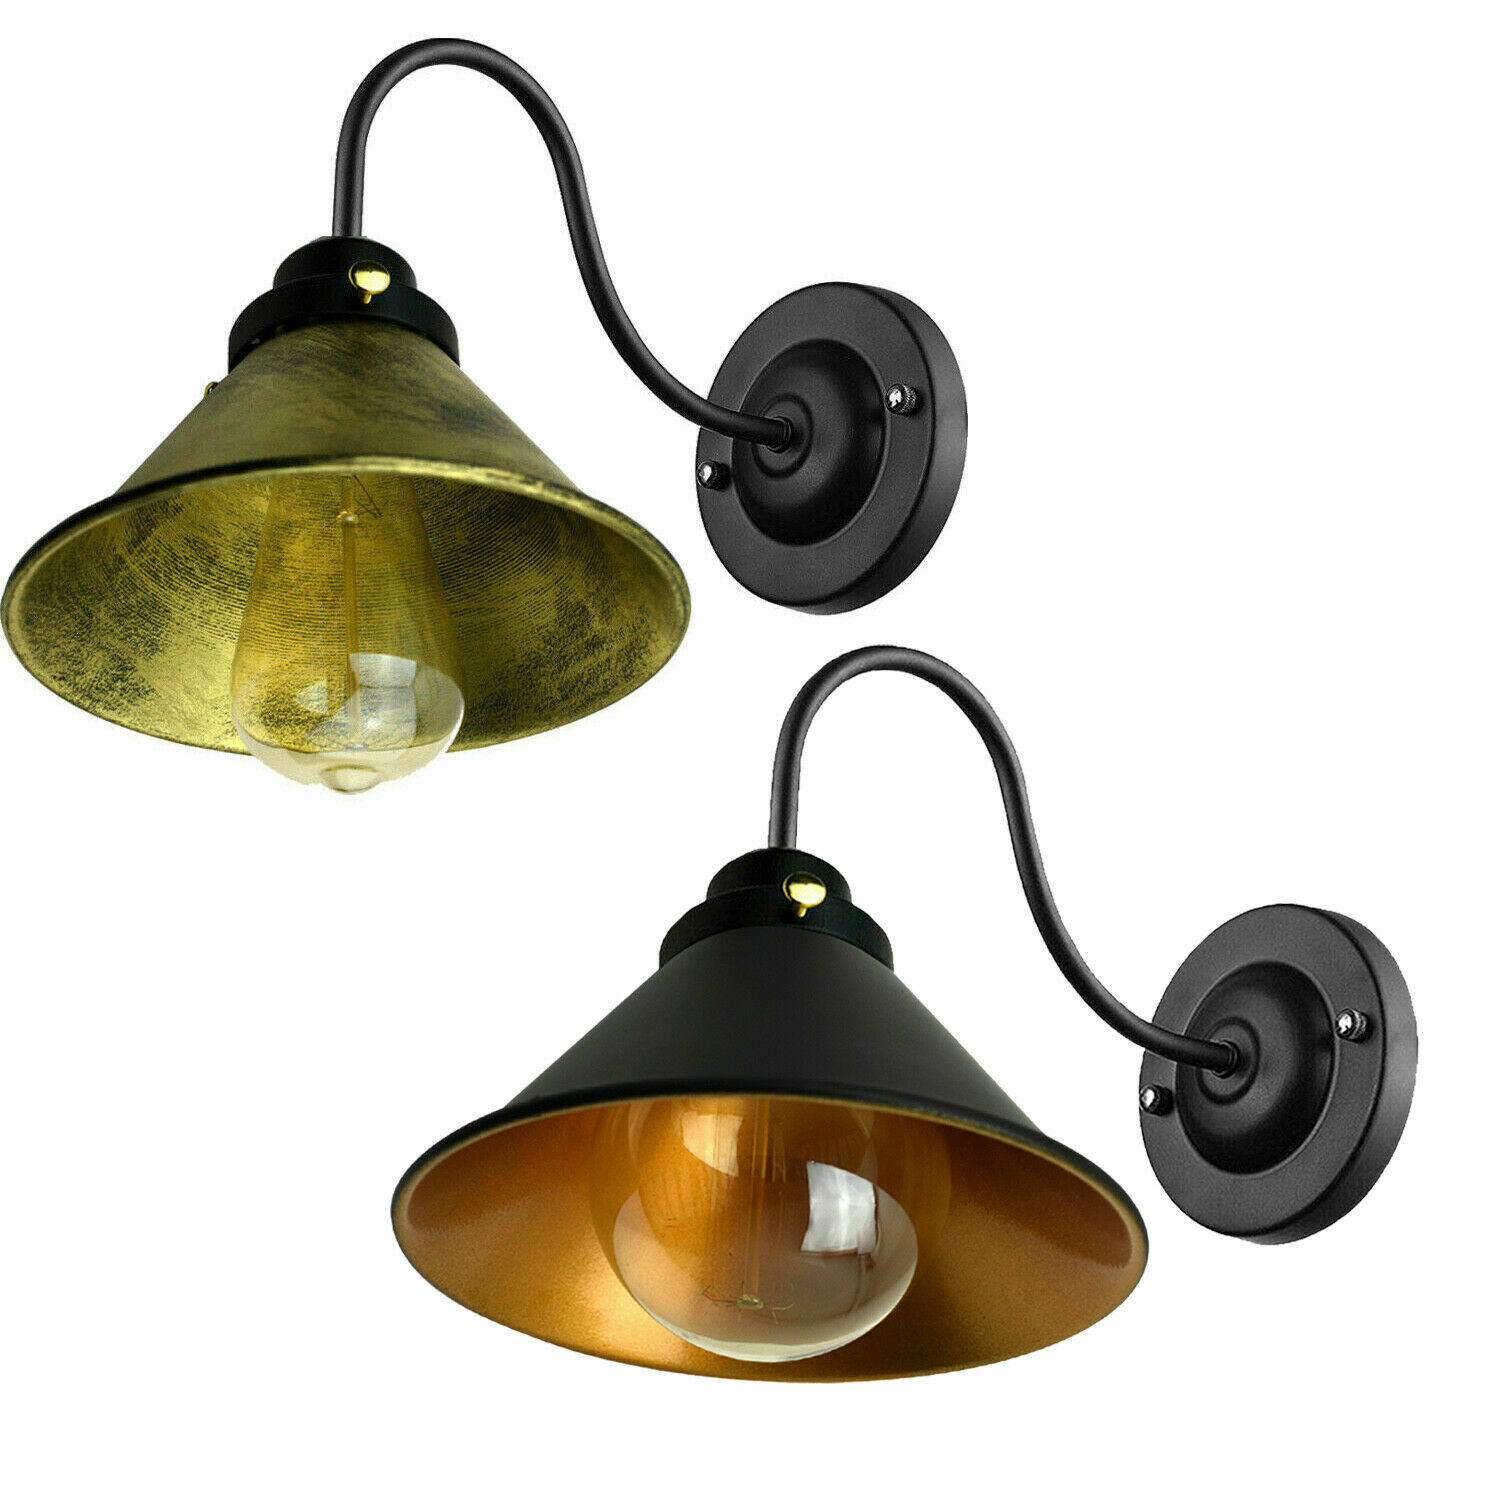 Wall Sconce Vintage Light Retro Industrial Iron Wall Lamp Shade Loft Brushed Ebay